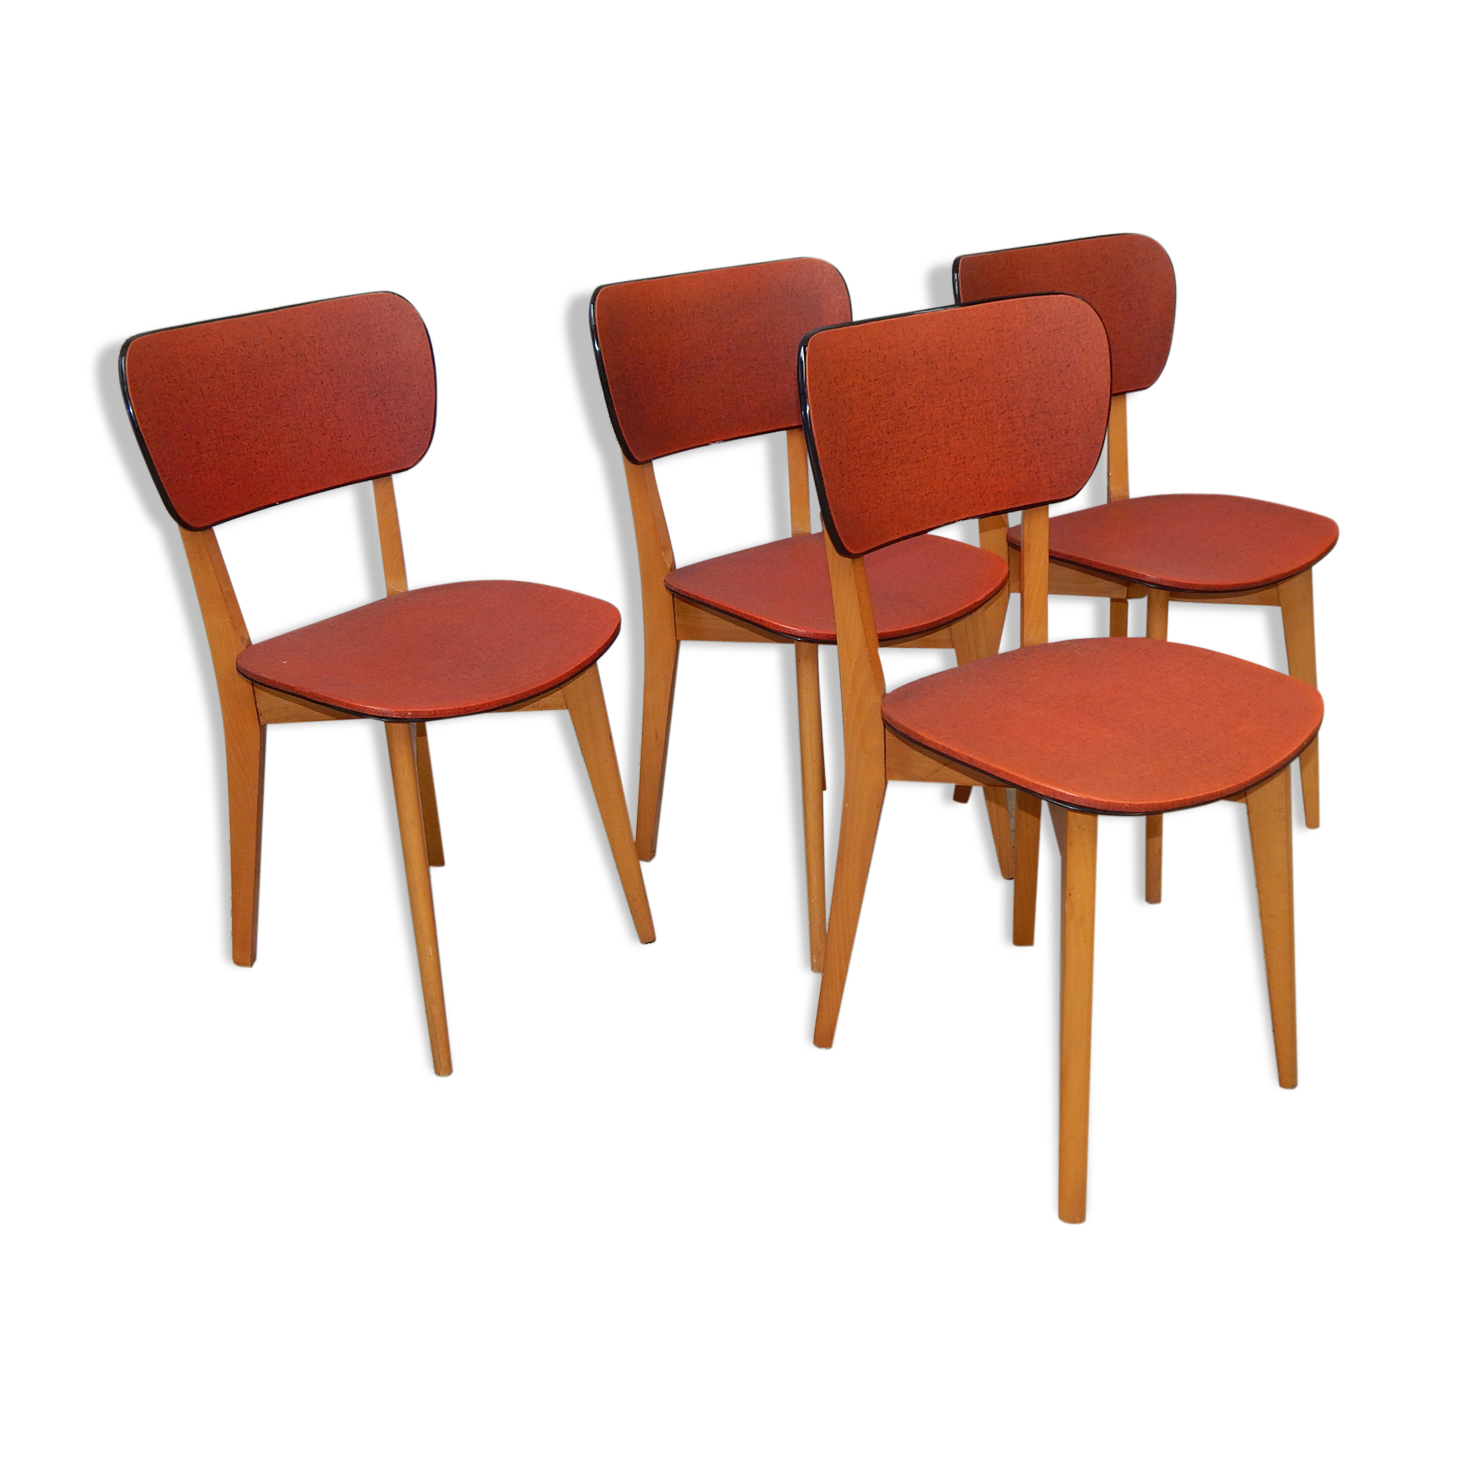 chaises rouges design best lot de chaises design rouges katia with chaises rouges design. Black Bedroom Furniture Sets. Home Design Ideas